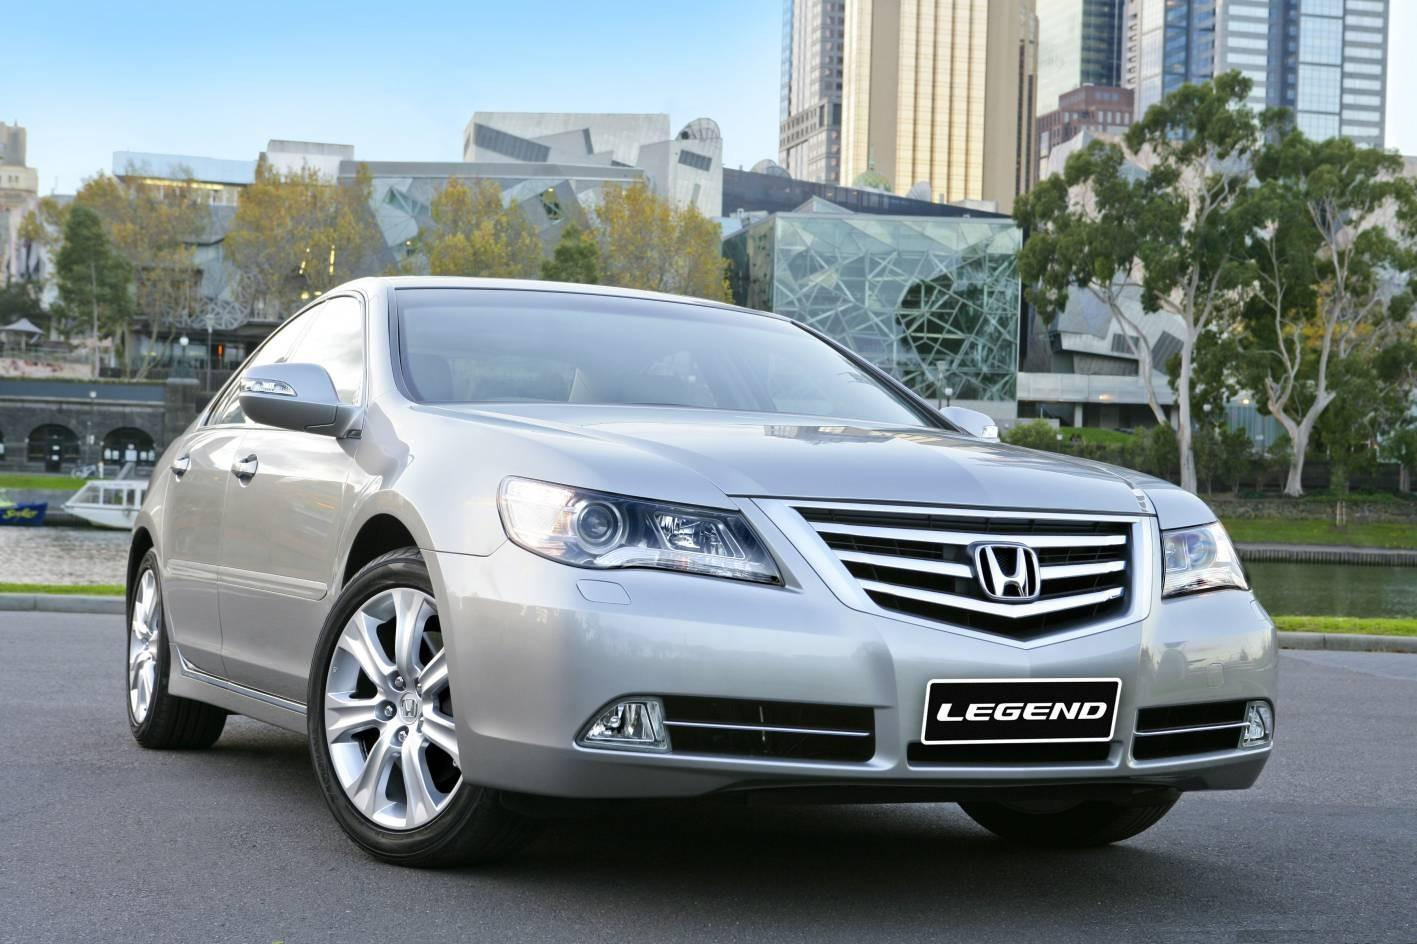 Honda Legend photo 03